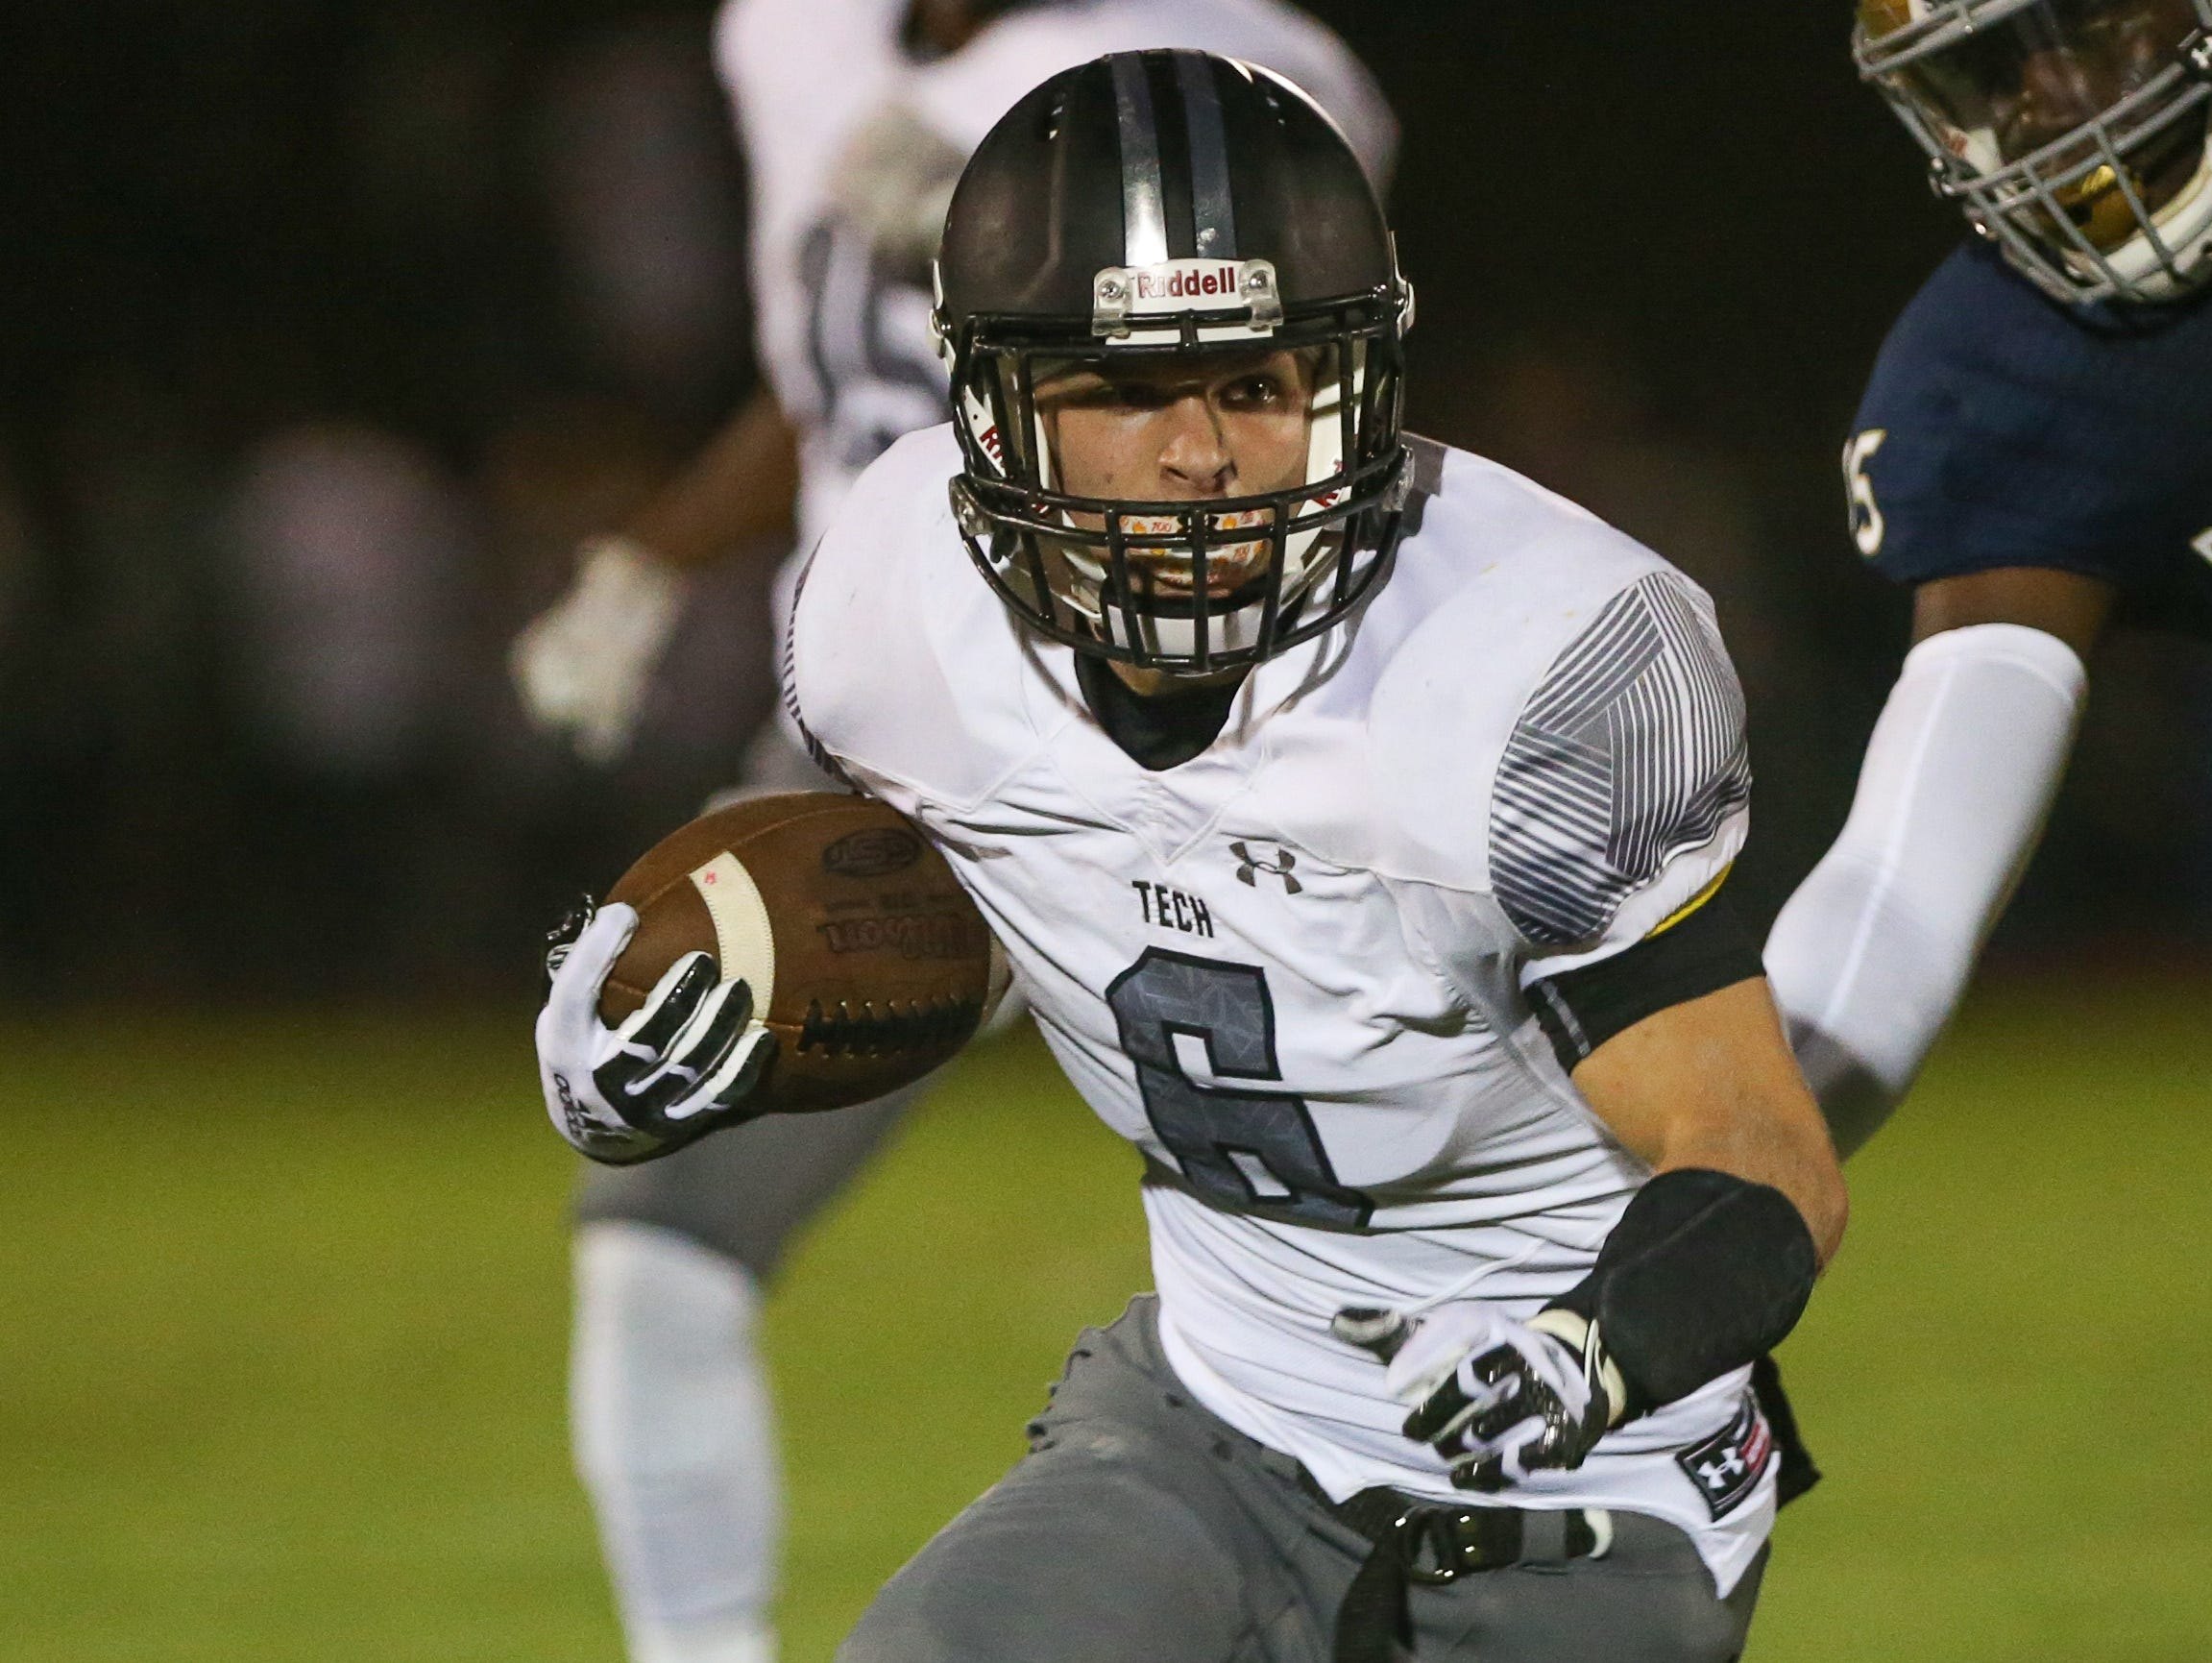 Sussex Tech's Michael Norsworthy carries the ball in the fourth quarter.